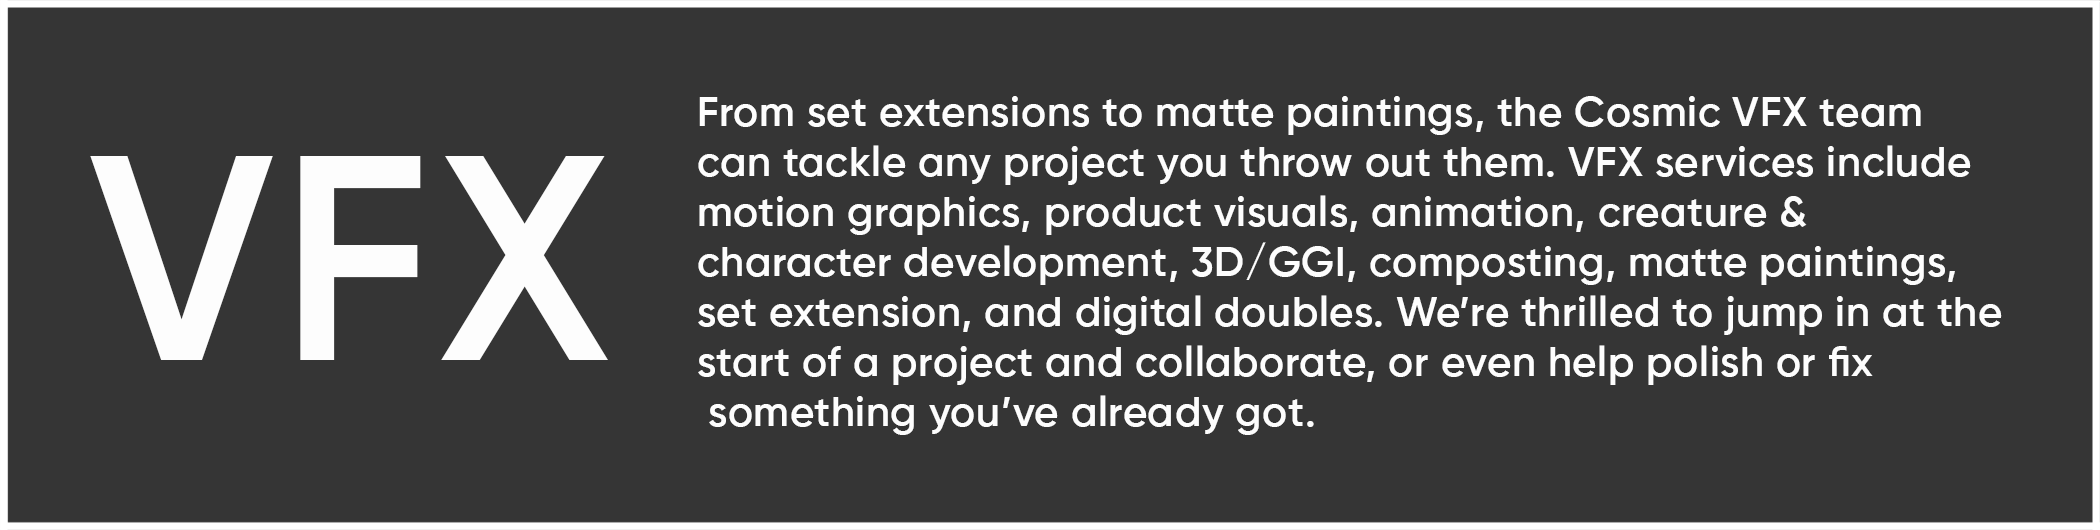 From set extensions to matte paintings, the Cosmic VFX team  can tackle any project you throw out them. VFX services include  motion graphics, product visuals, animation, creature &  character development, 3D/GGI, composting, matte paintings,  set extension, and digital doubles. We're thrilled to jump in at the  start of a project and collaborate, or even help polish or fix  something you've already got.